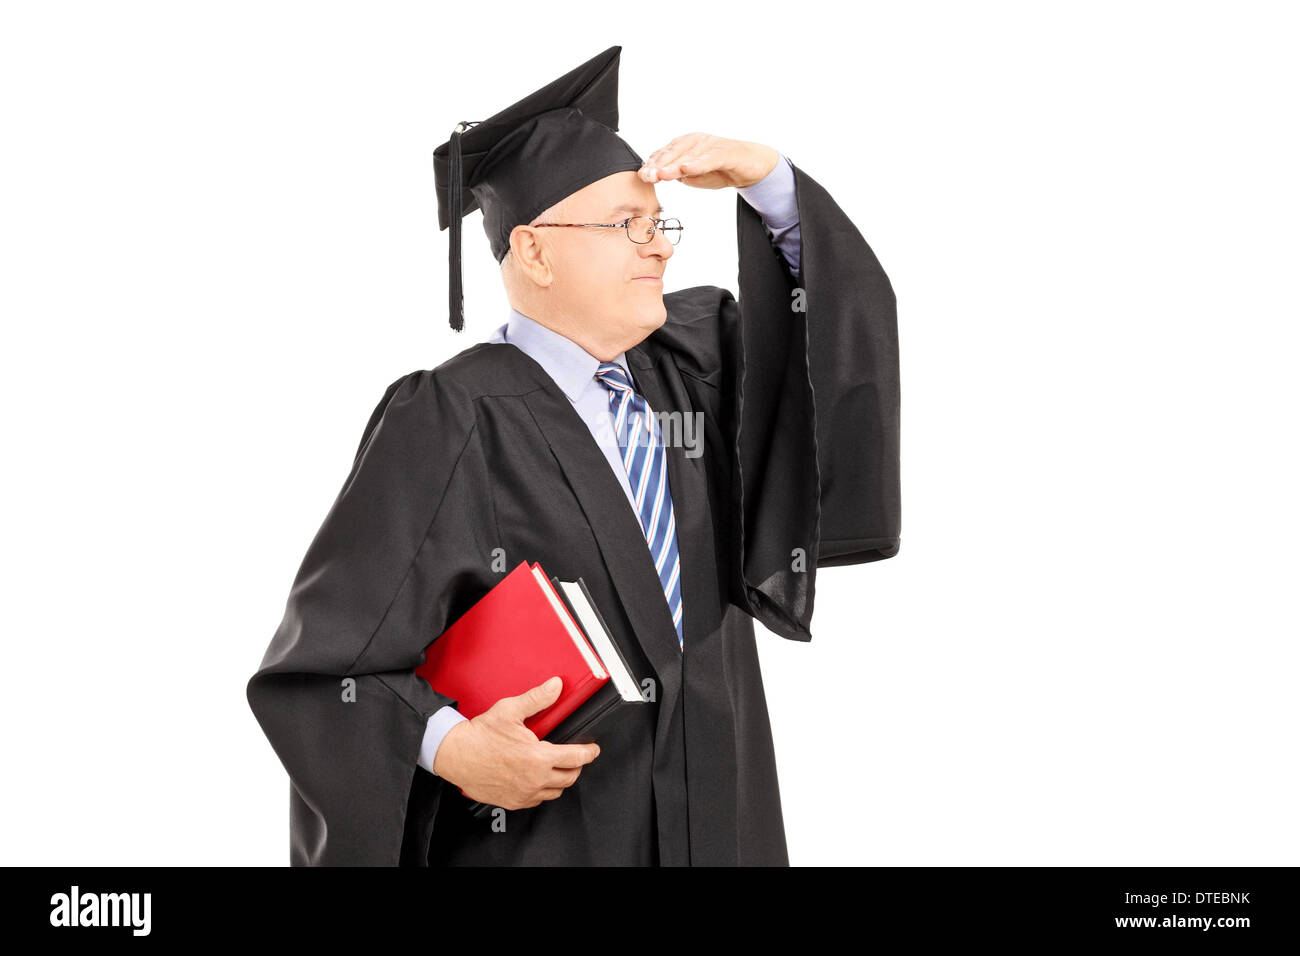 Male College Professor In Graduation Gown Looking With Hand Over ...